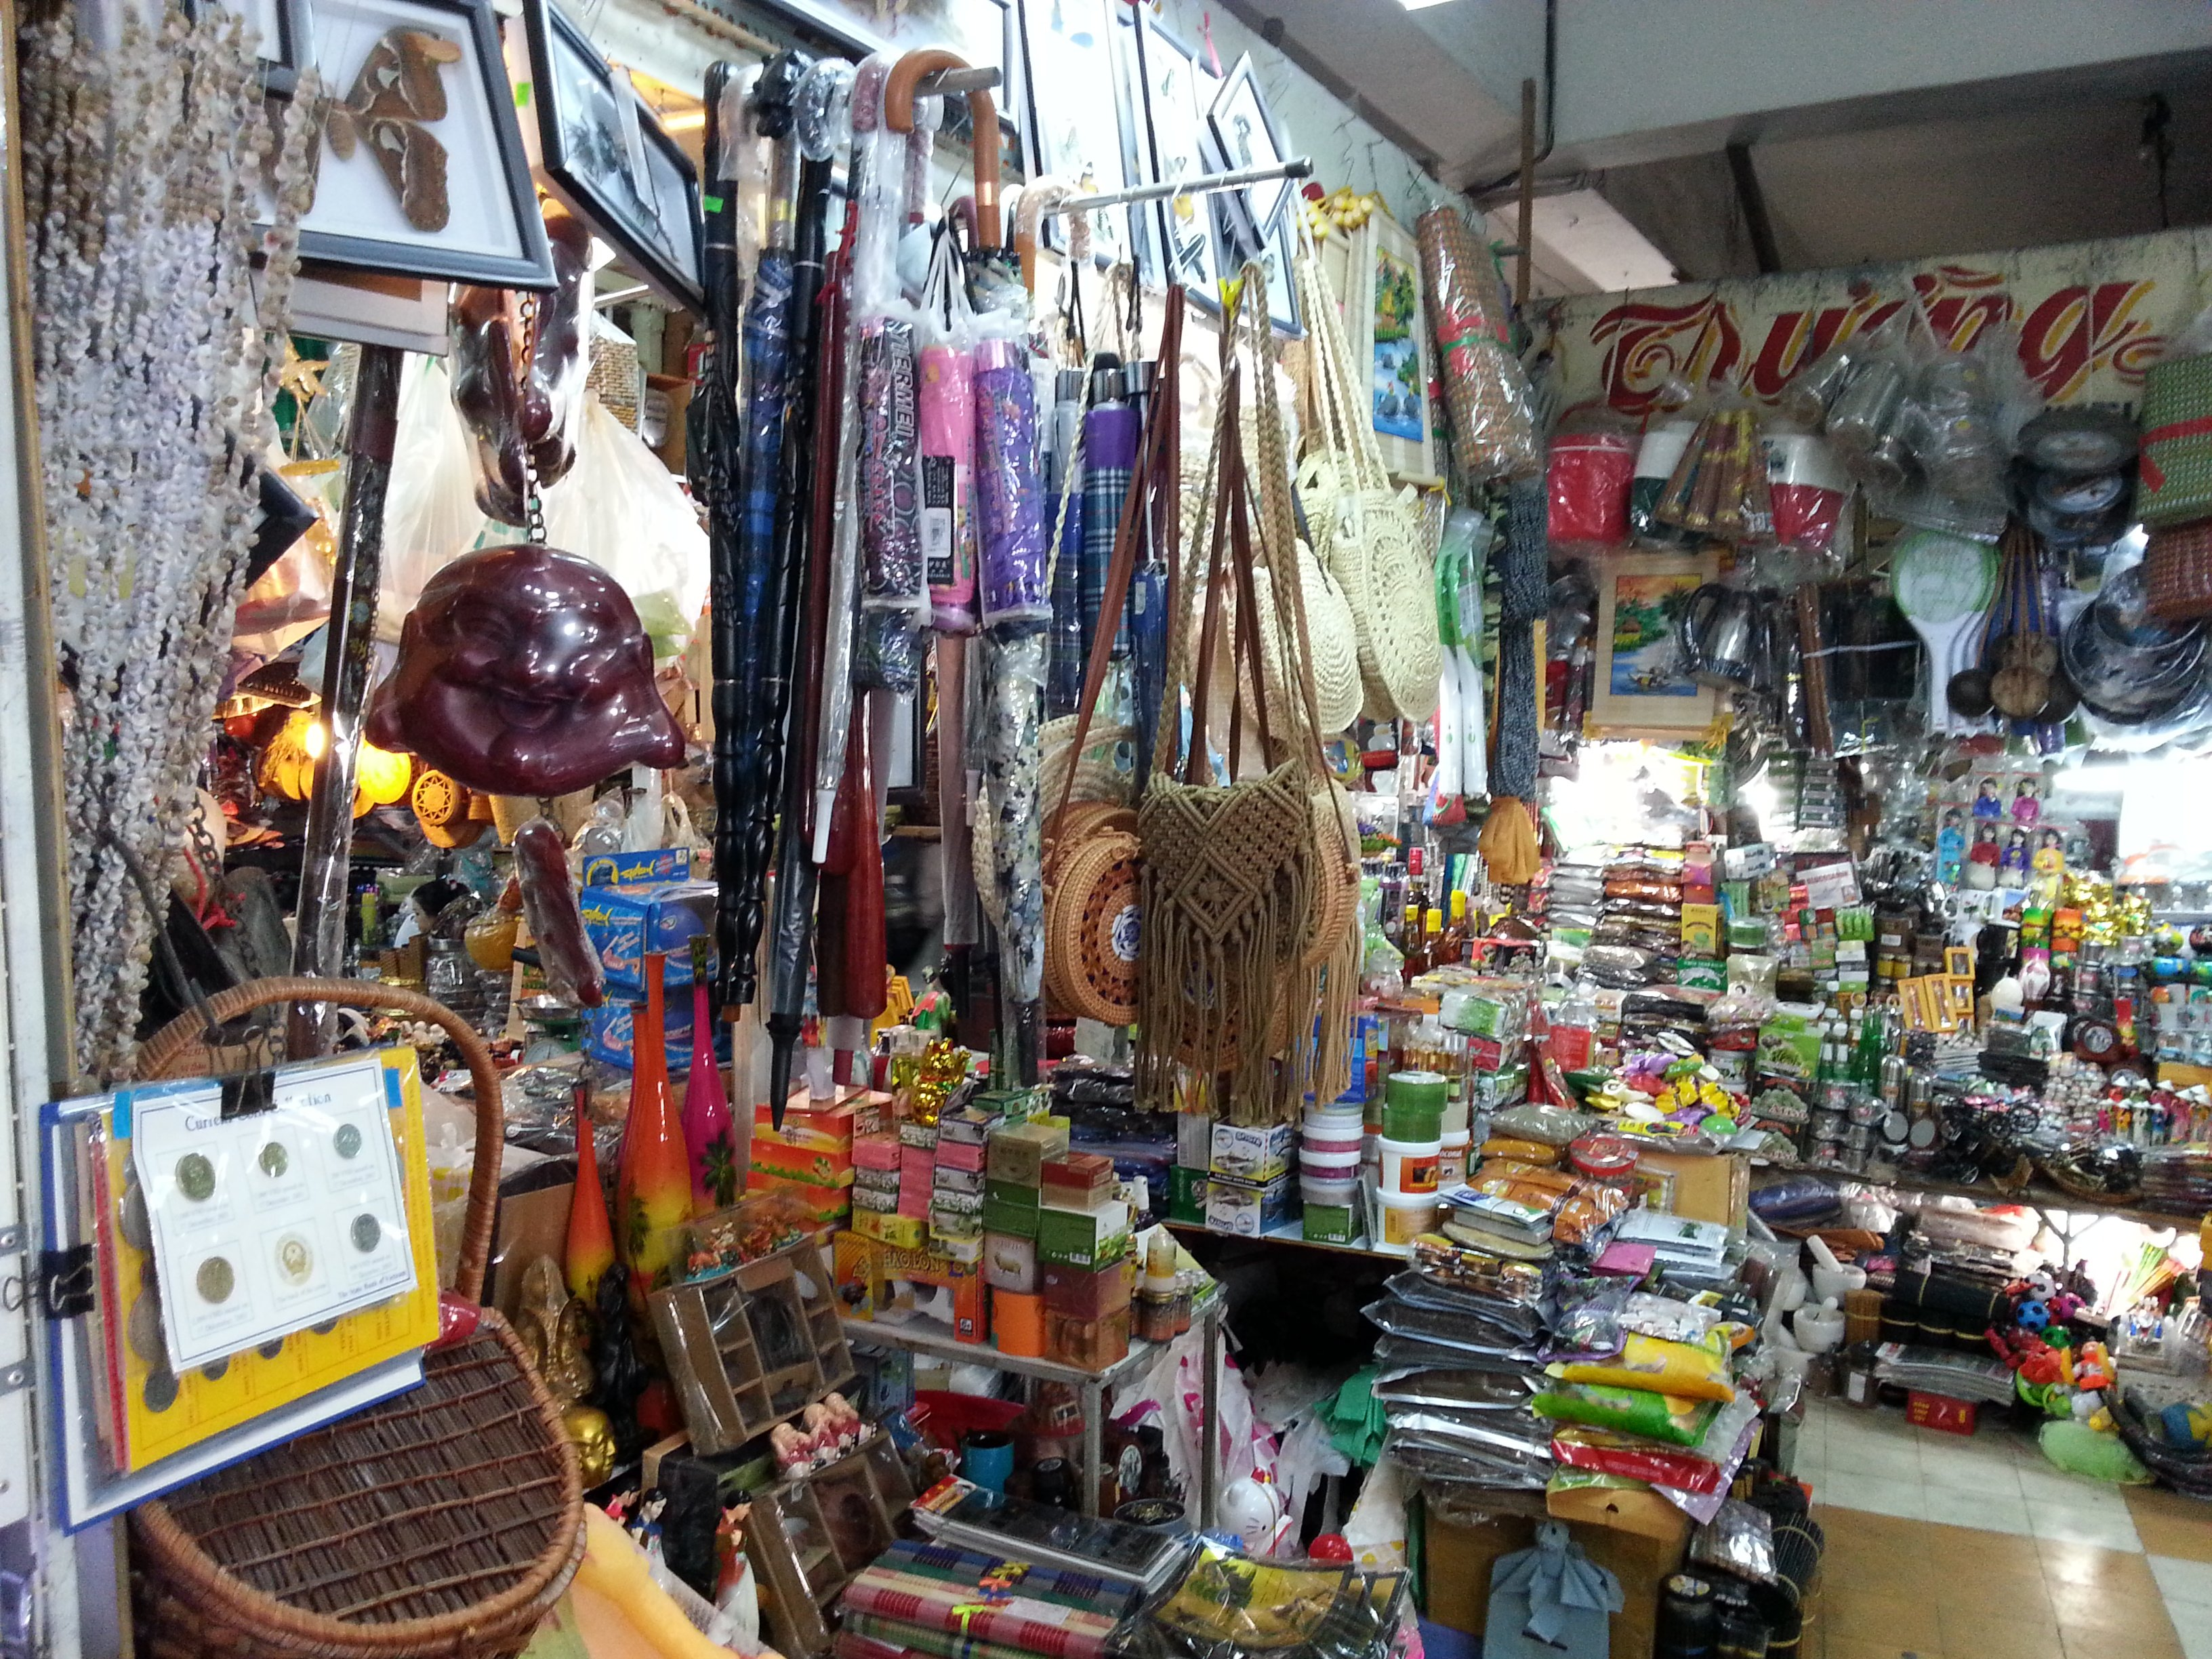 Souvenirs on sale in the clothing section of Nha Trang Market